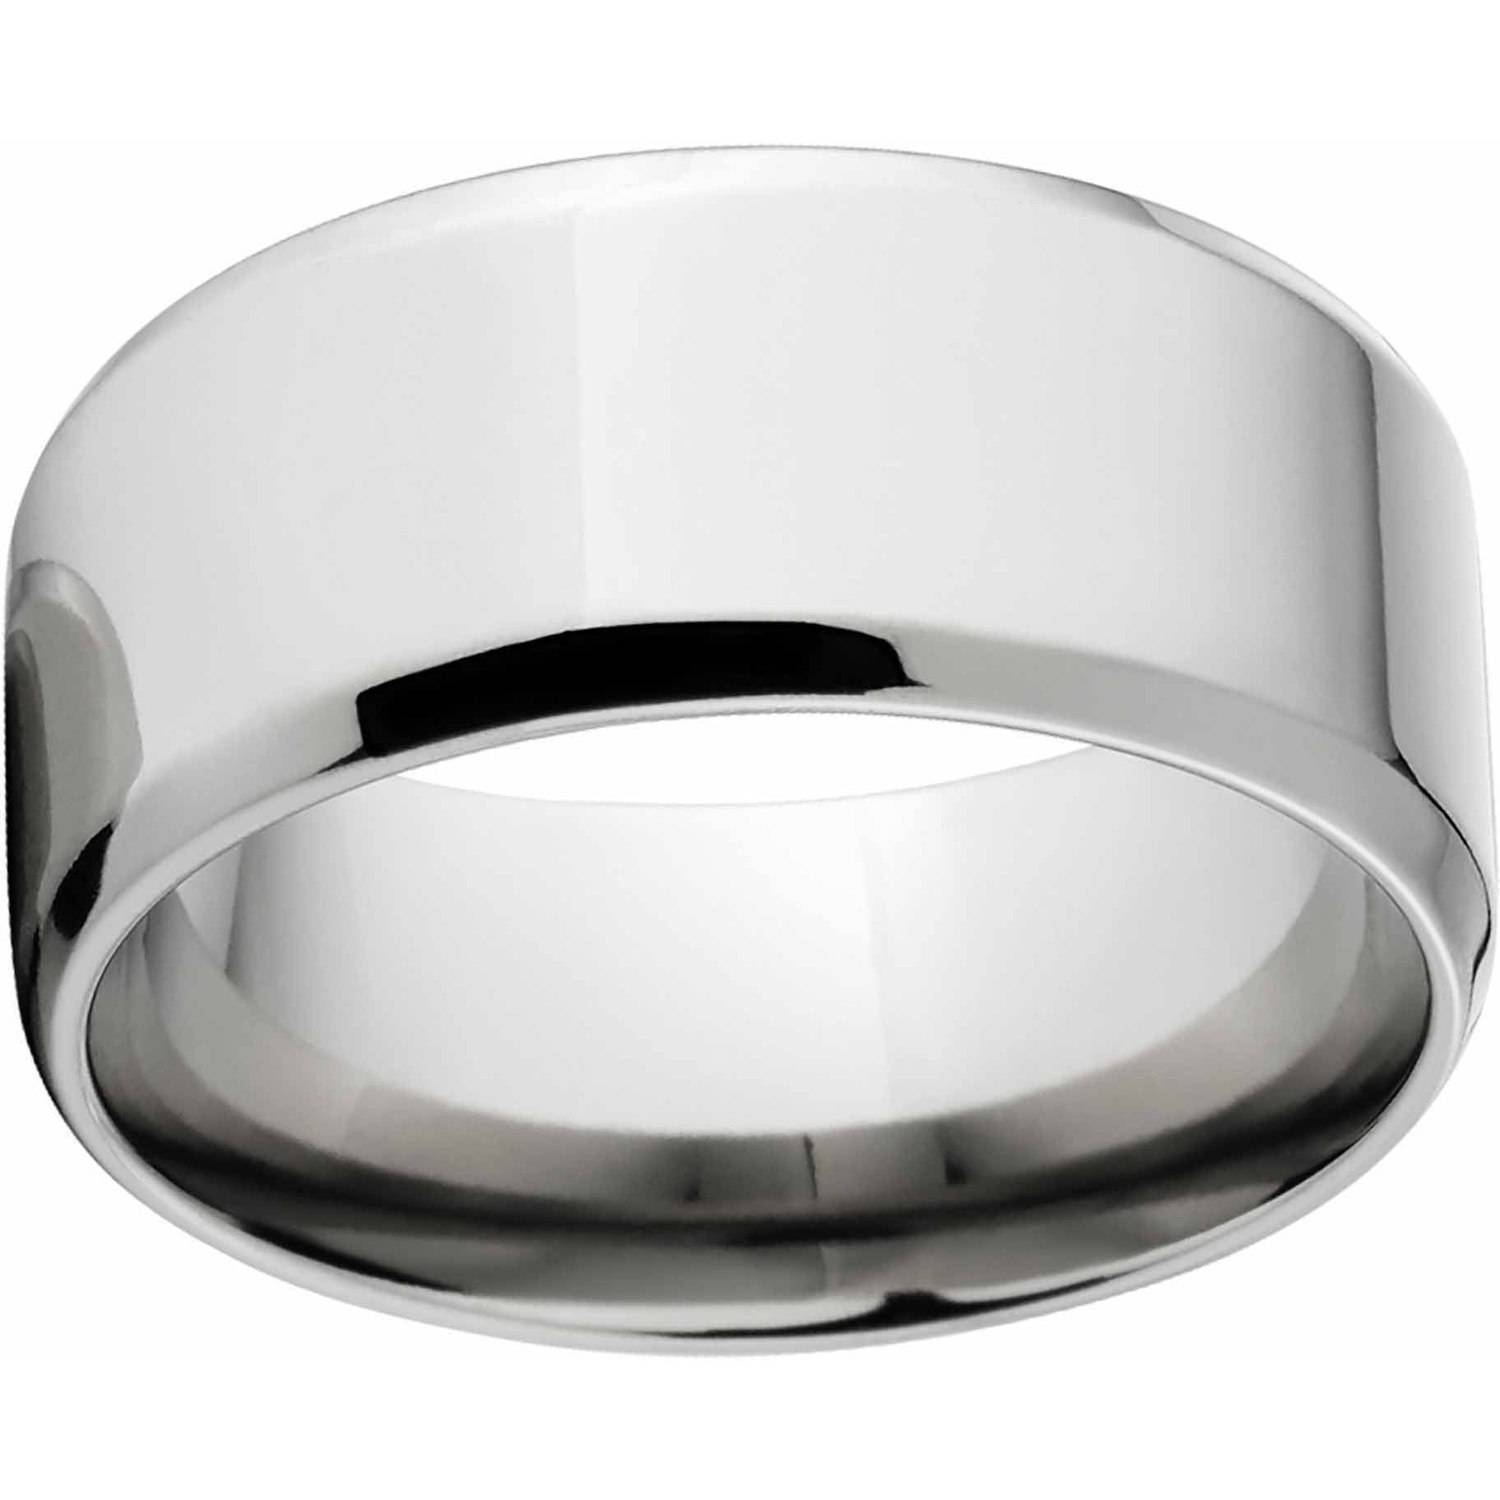 Polished 10Mm Titanium Wedding Band With Comfort Fit Design With Regard To Walmart Men's Wedding Bands (View 7 of 15)